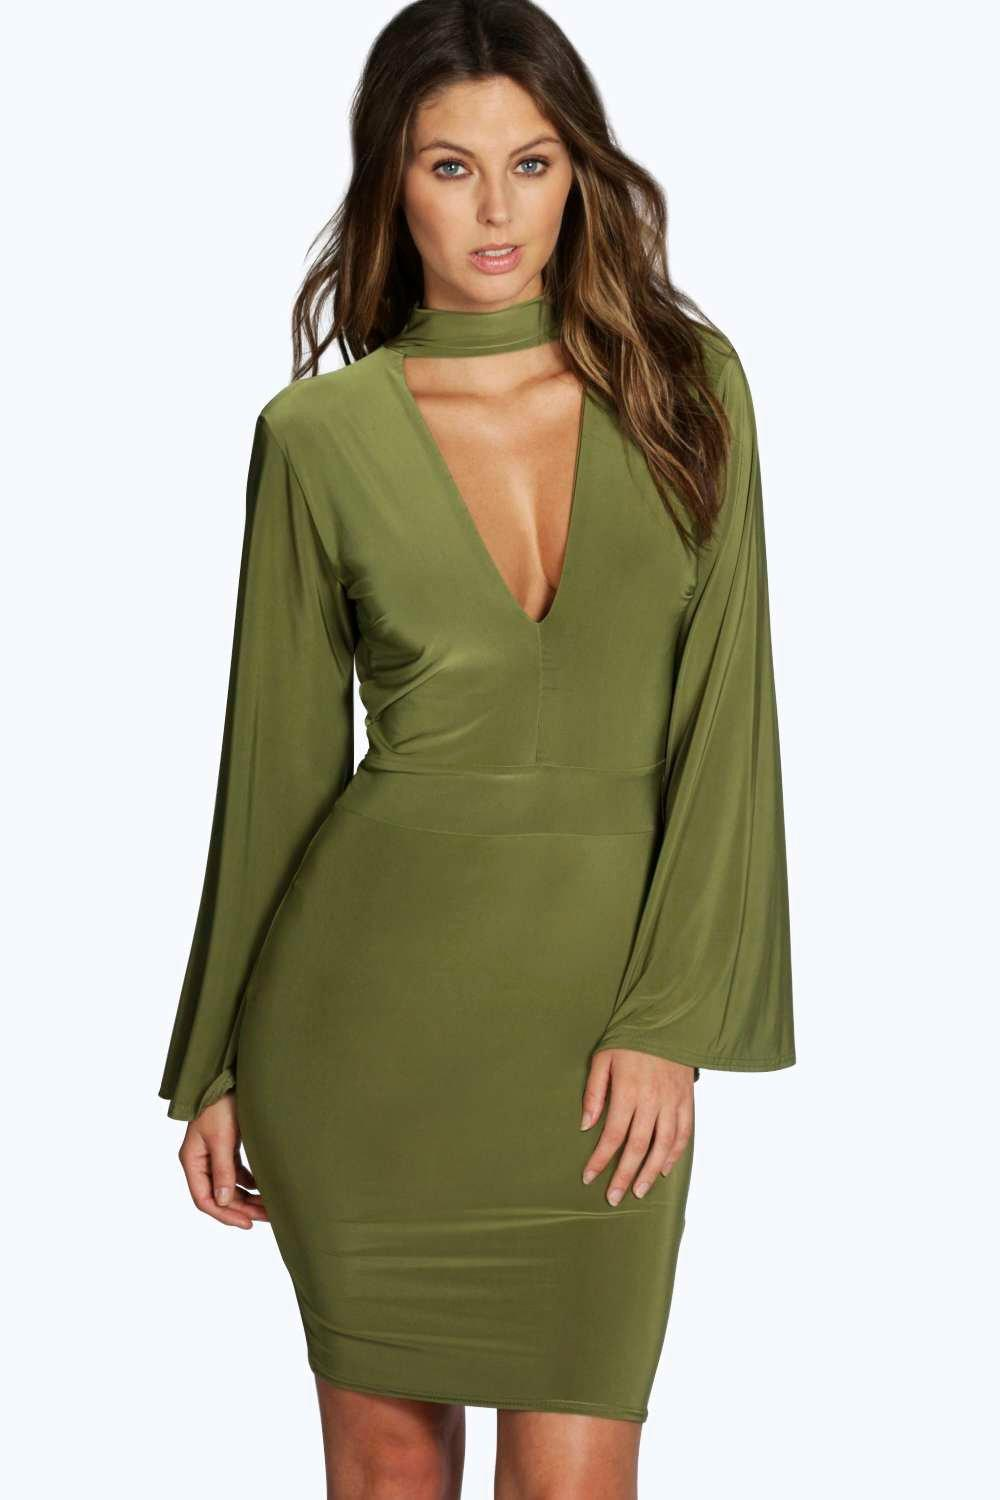 High Neck Plunge Bodycon Dress - olive